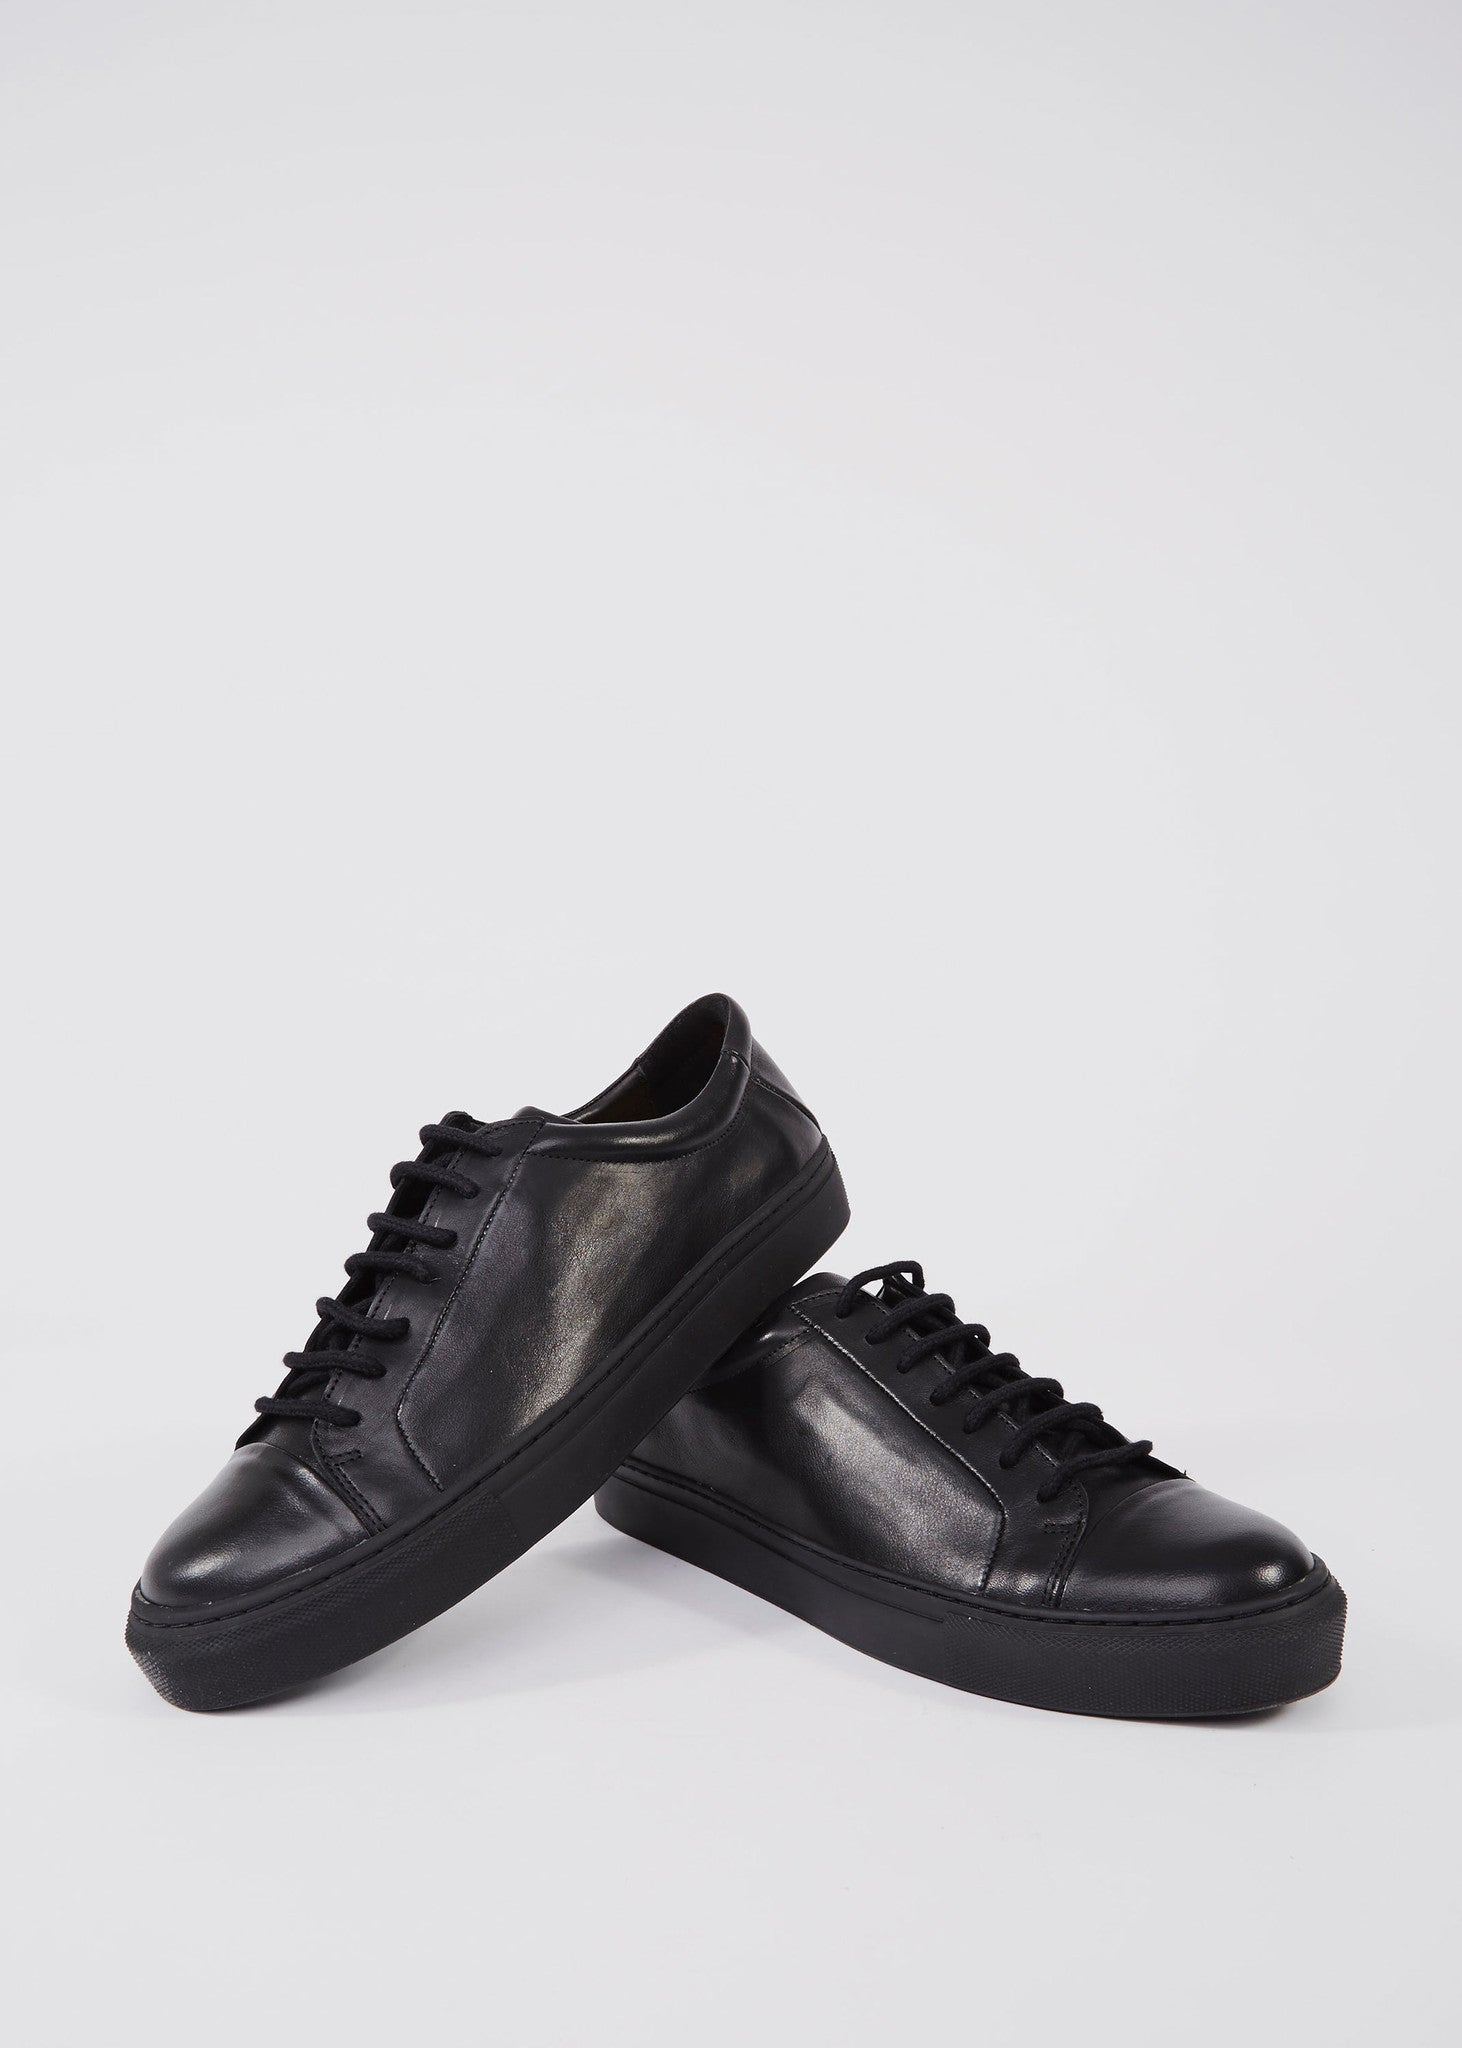 Spartacus Shoes Black